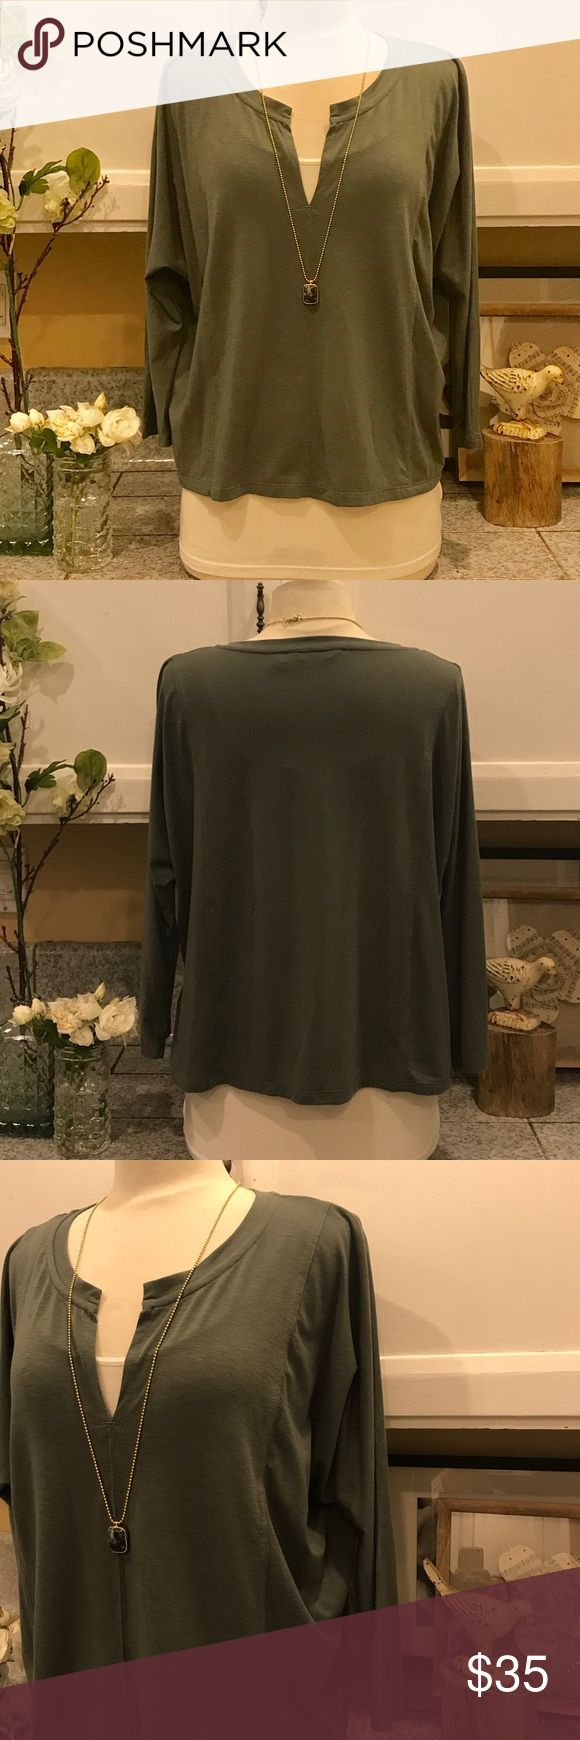 Athleta Green Top Comfortable Athleta long sleeve top. Wear it with your favorite jeans or your leggings. Very cute layered with a jacket and scarf. No Trades. Offers welcome.  Athleta Tops Tees - Long Sleeve